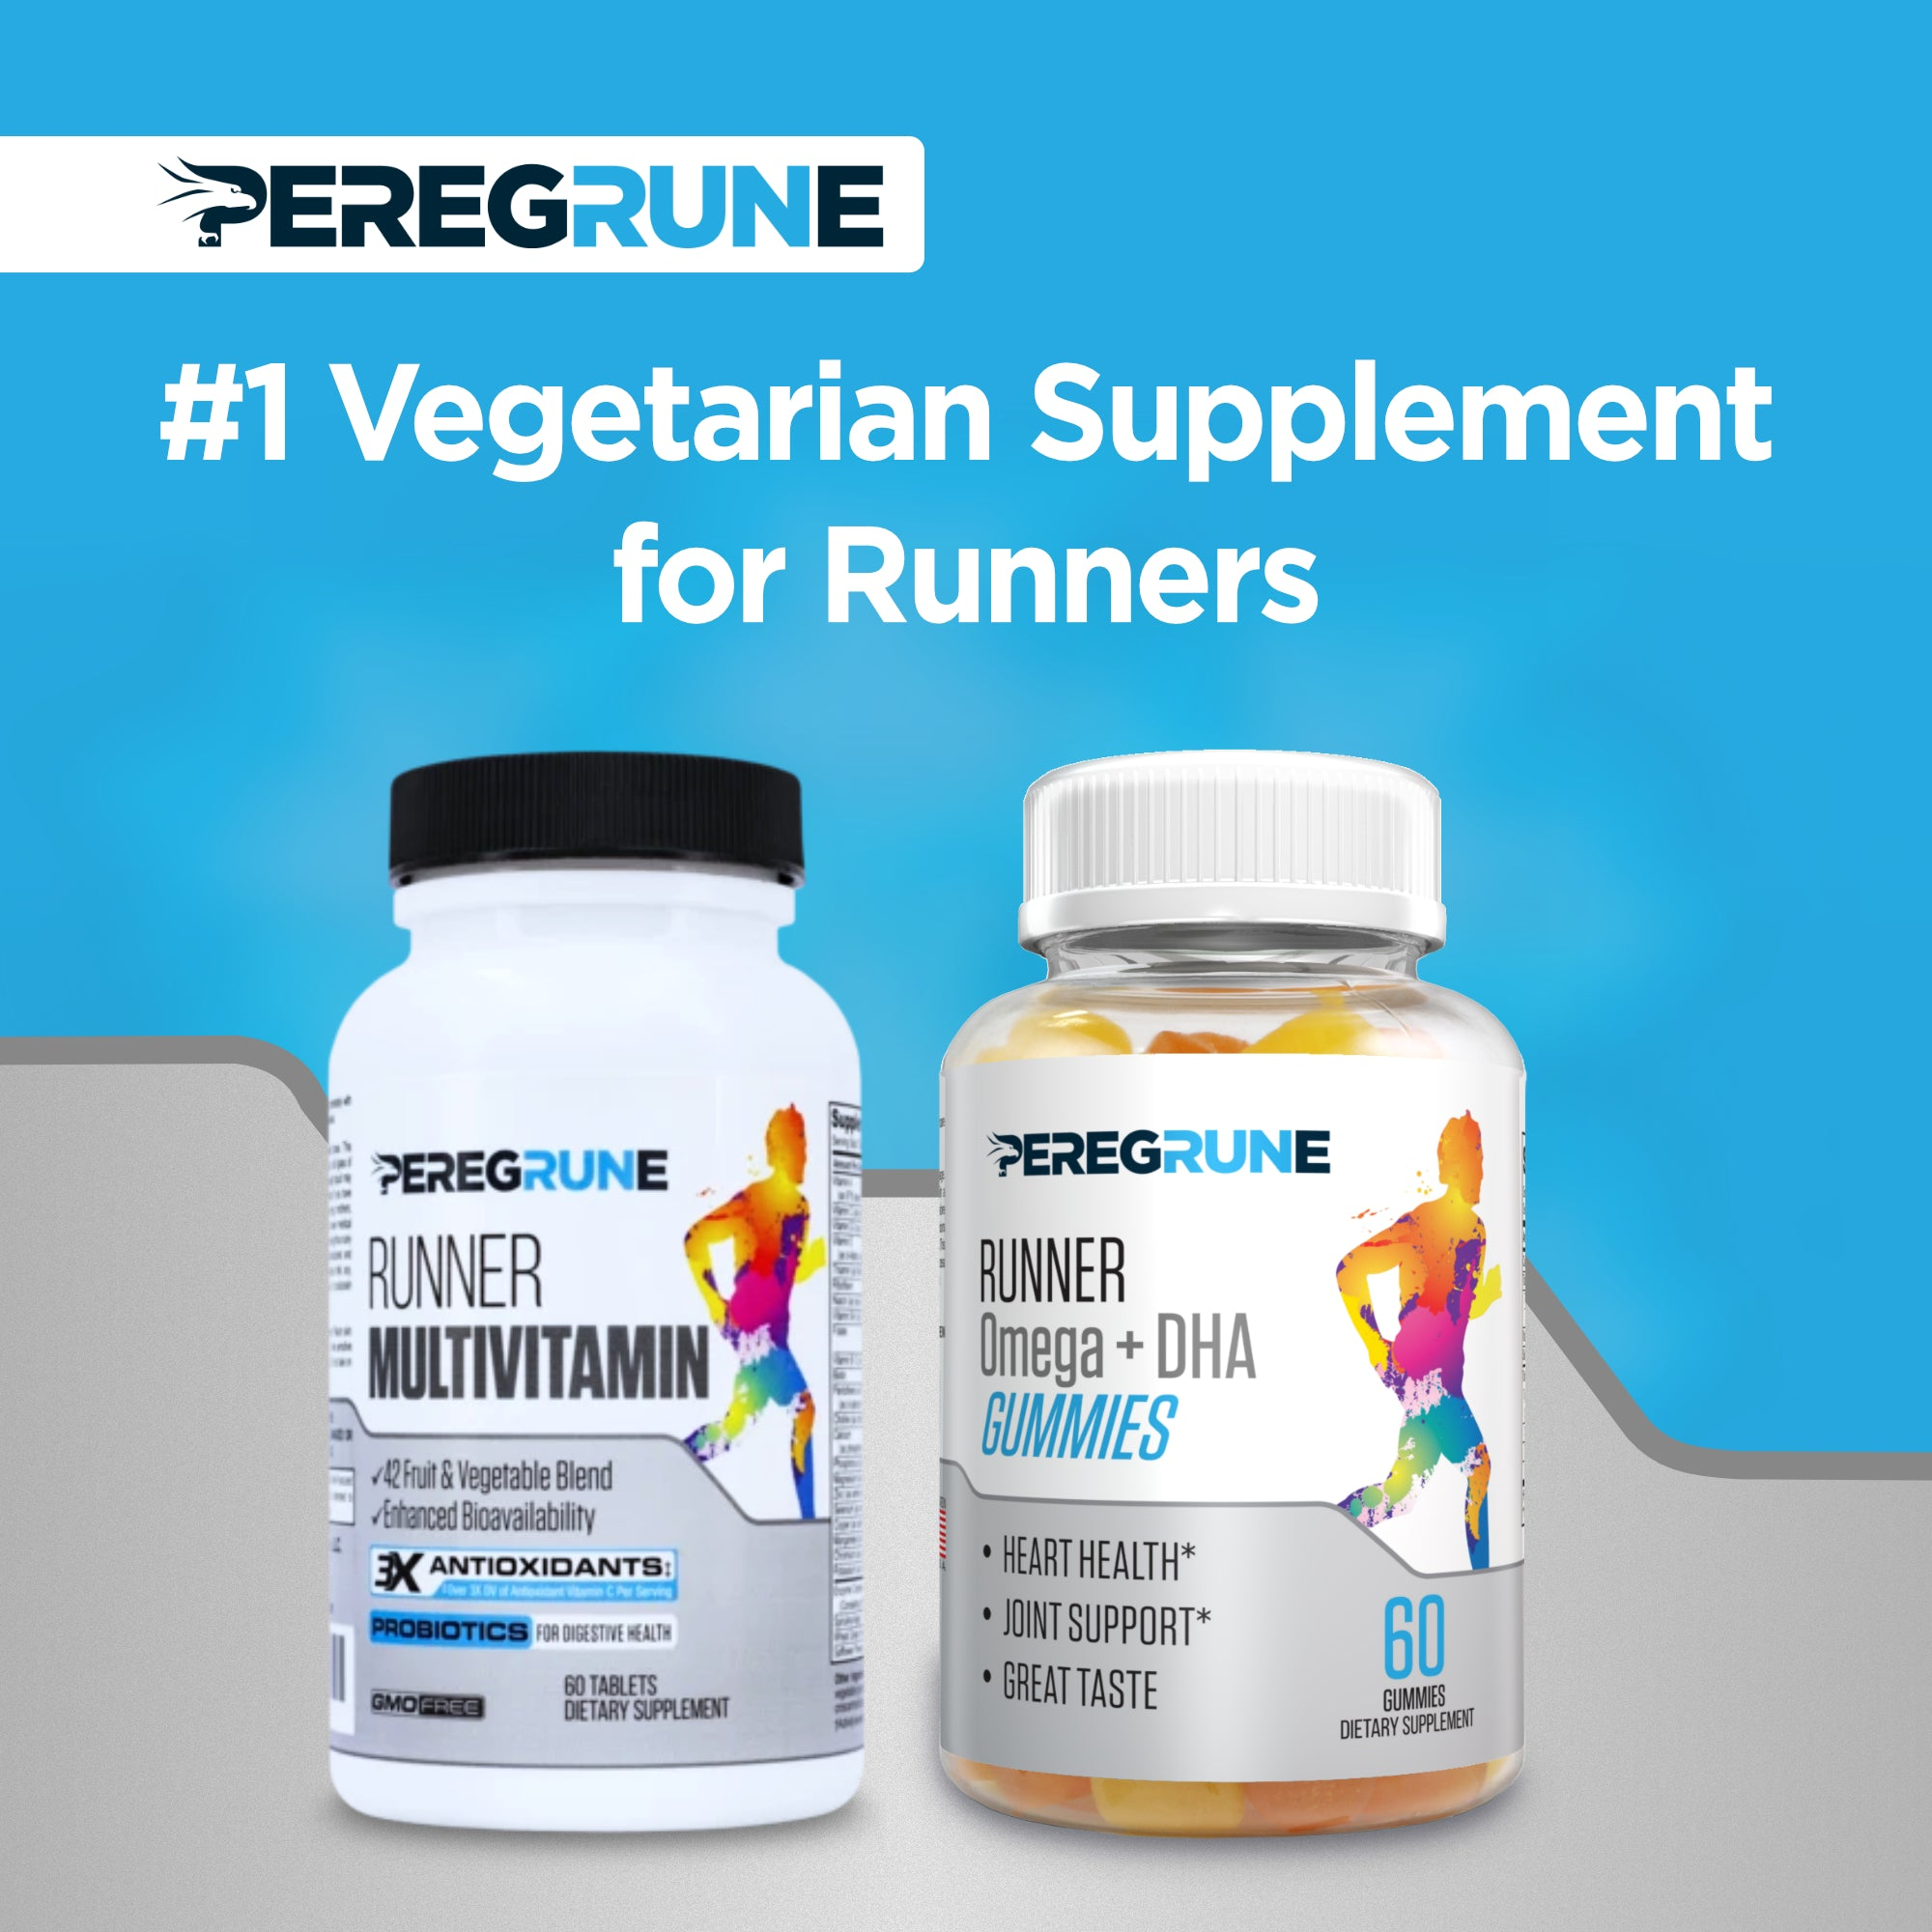 Runner Multivitamin + Omega Gummy Bundle (Vegetarian) - 1 Month Supply